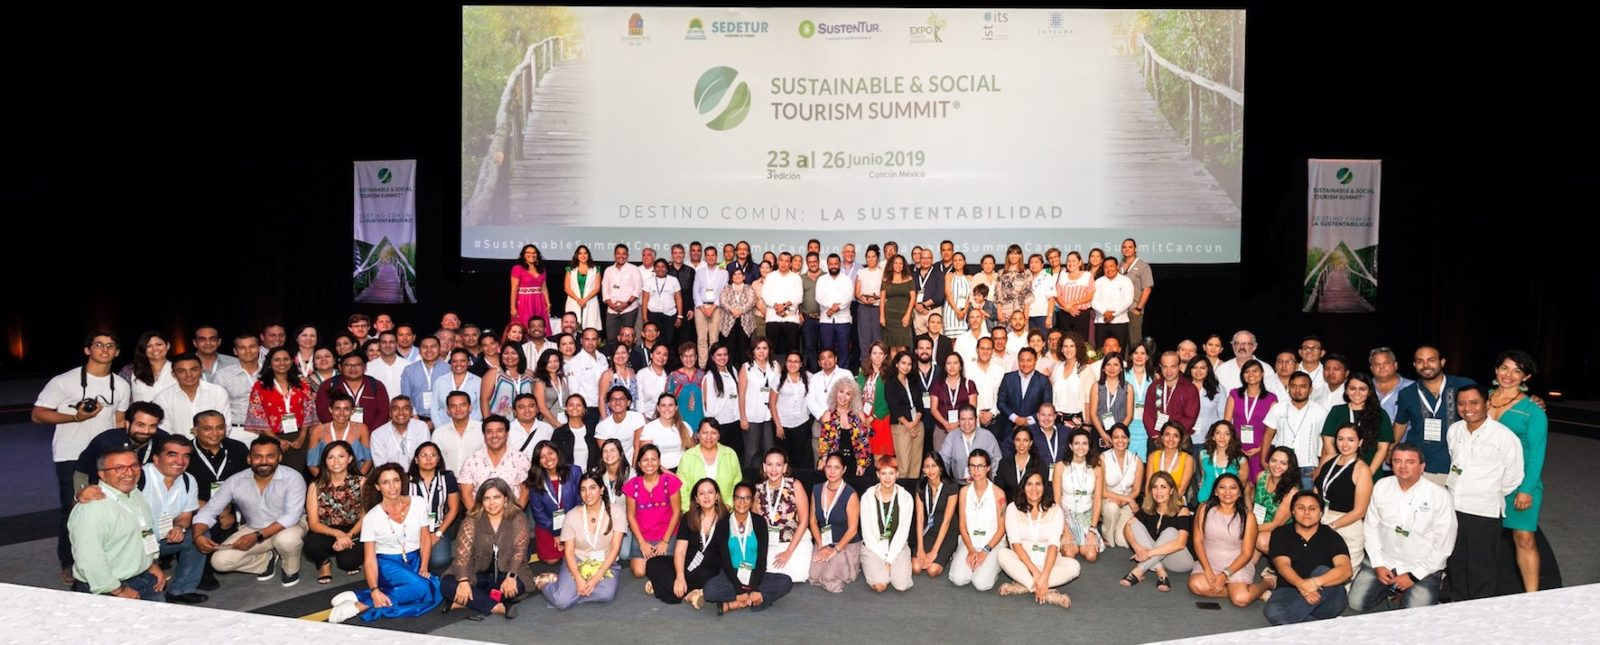 Cancun Summit: ISTO reviews employment and tourism